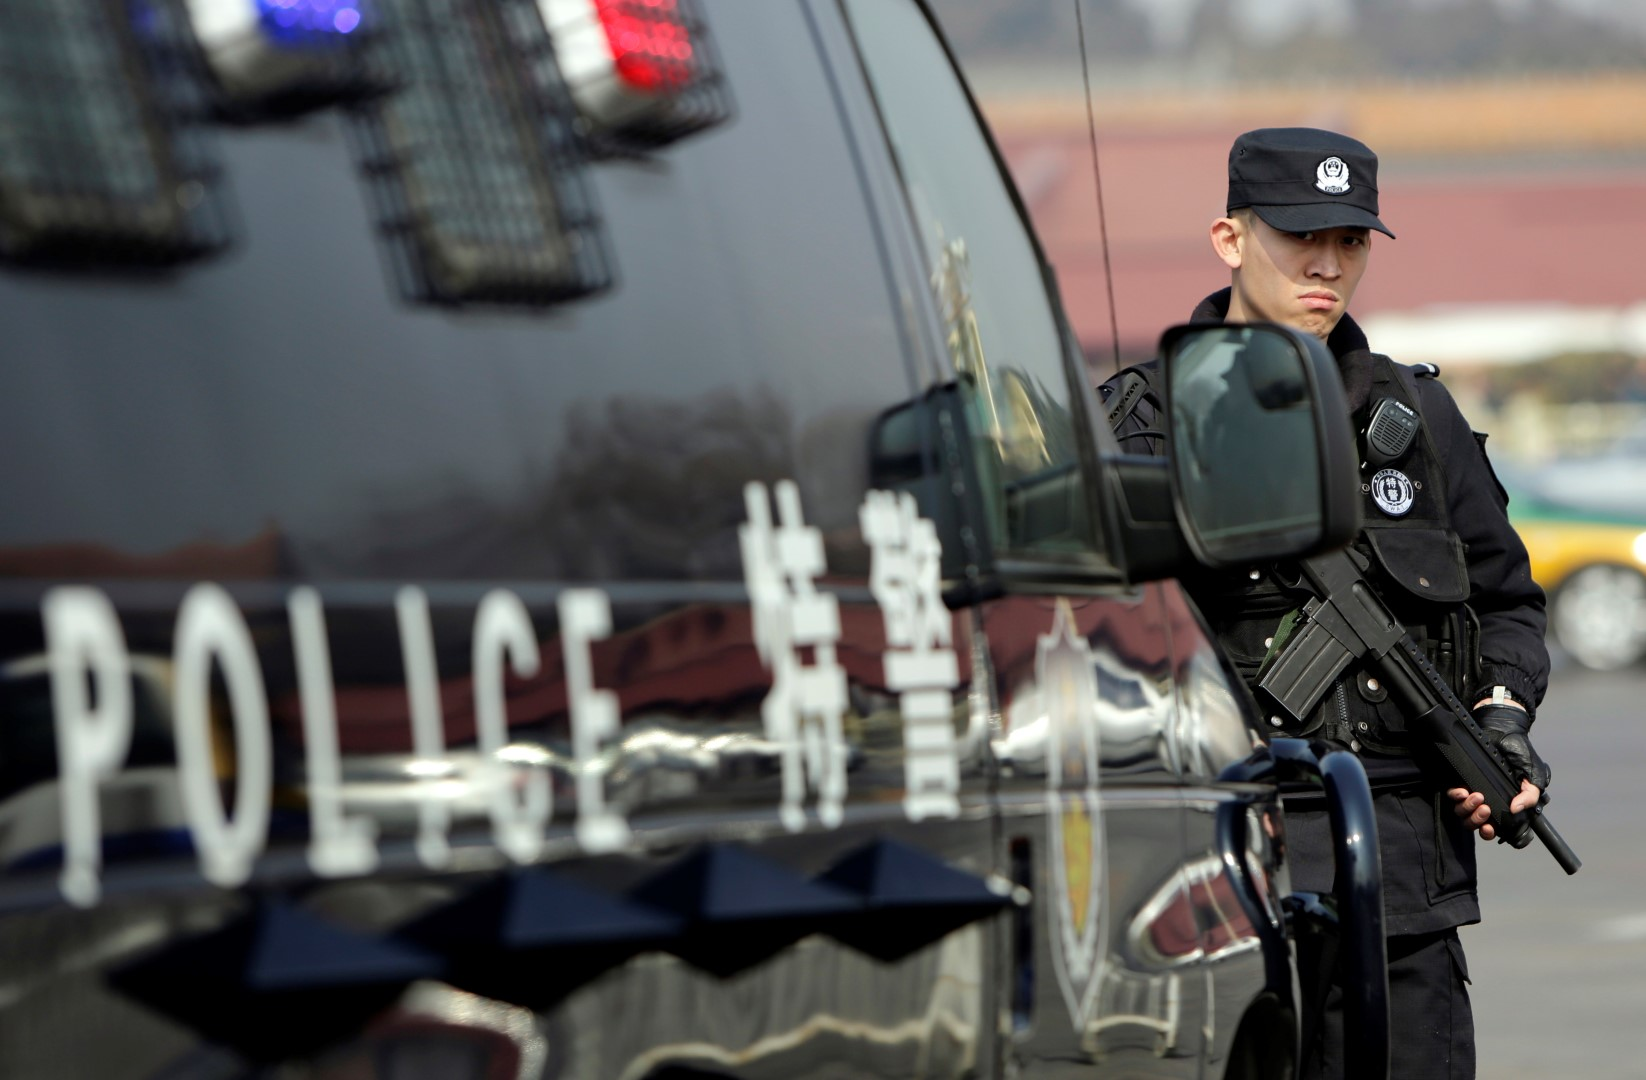 A policeman stands guard next to a vehicle of the Special Weapons and Tactics (SWAT) team on the Chang'an Avenue in front of the Tiananmen Square in Beijing ahead of the opening of the Chinese People's Political Consultative Conference (CPPCC), March 2, 2014. REUTERS/Jason Lee (CHINA - Tags: POLITICS MILITARY) - RTR3FW7J